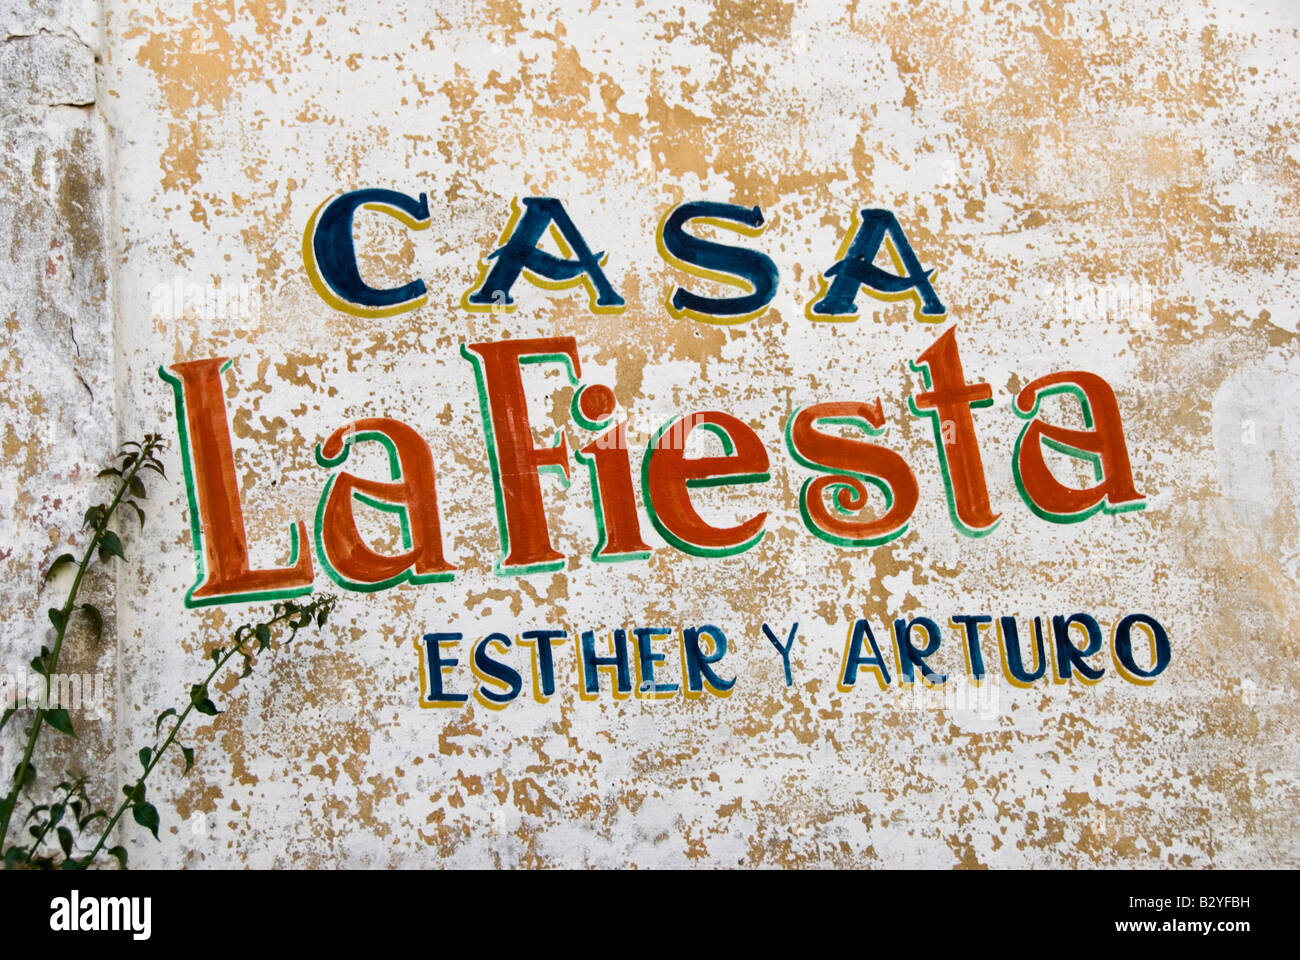 Old painted mural sign on private homestay or Casa Particular in Vi ales Cuba - Stock Image